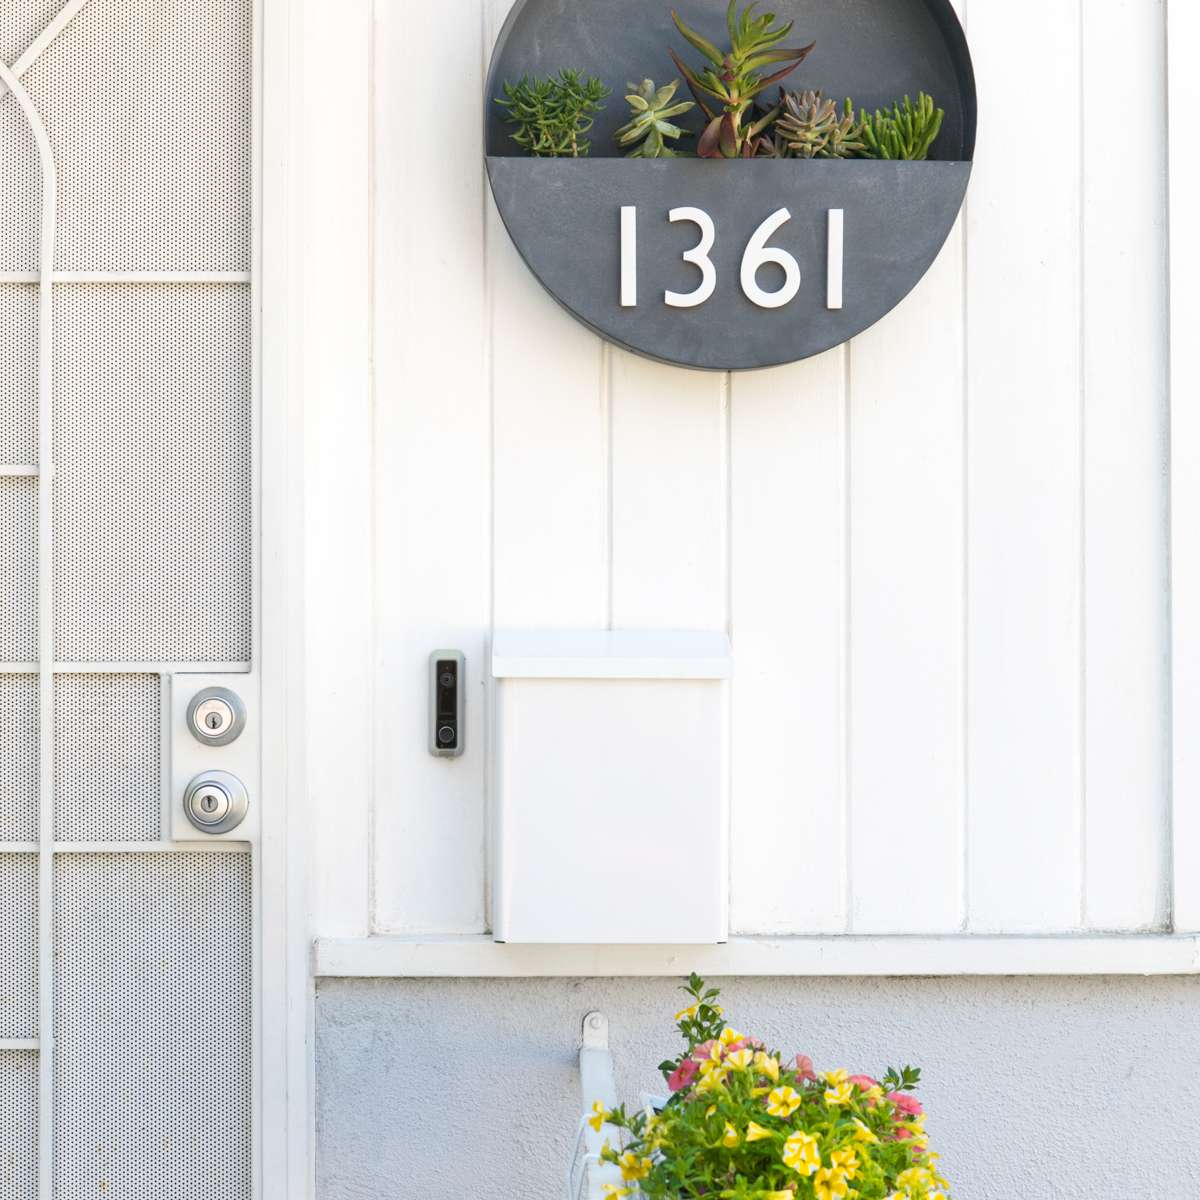 A round metal planter box with address numbers.